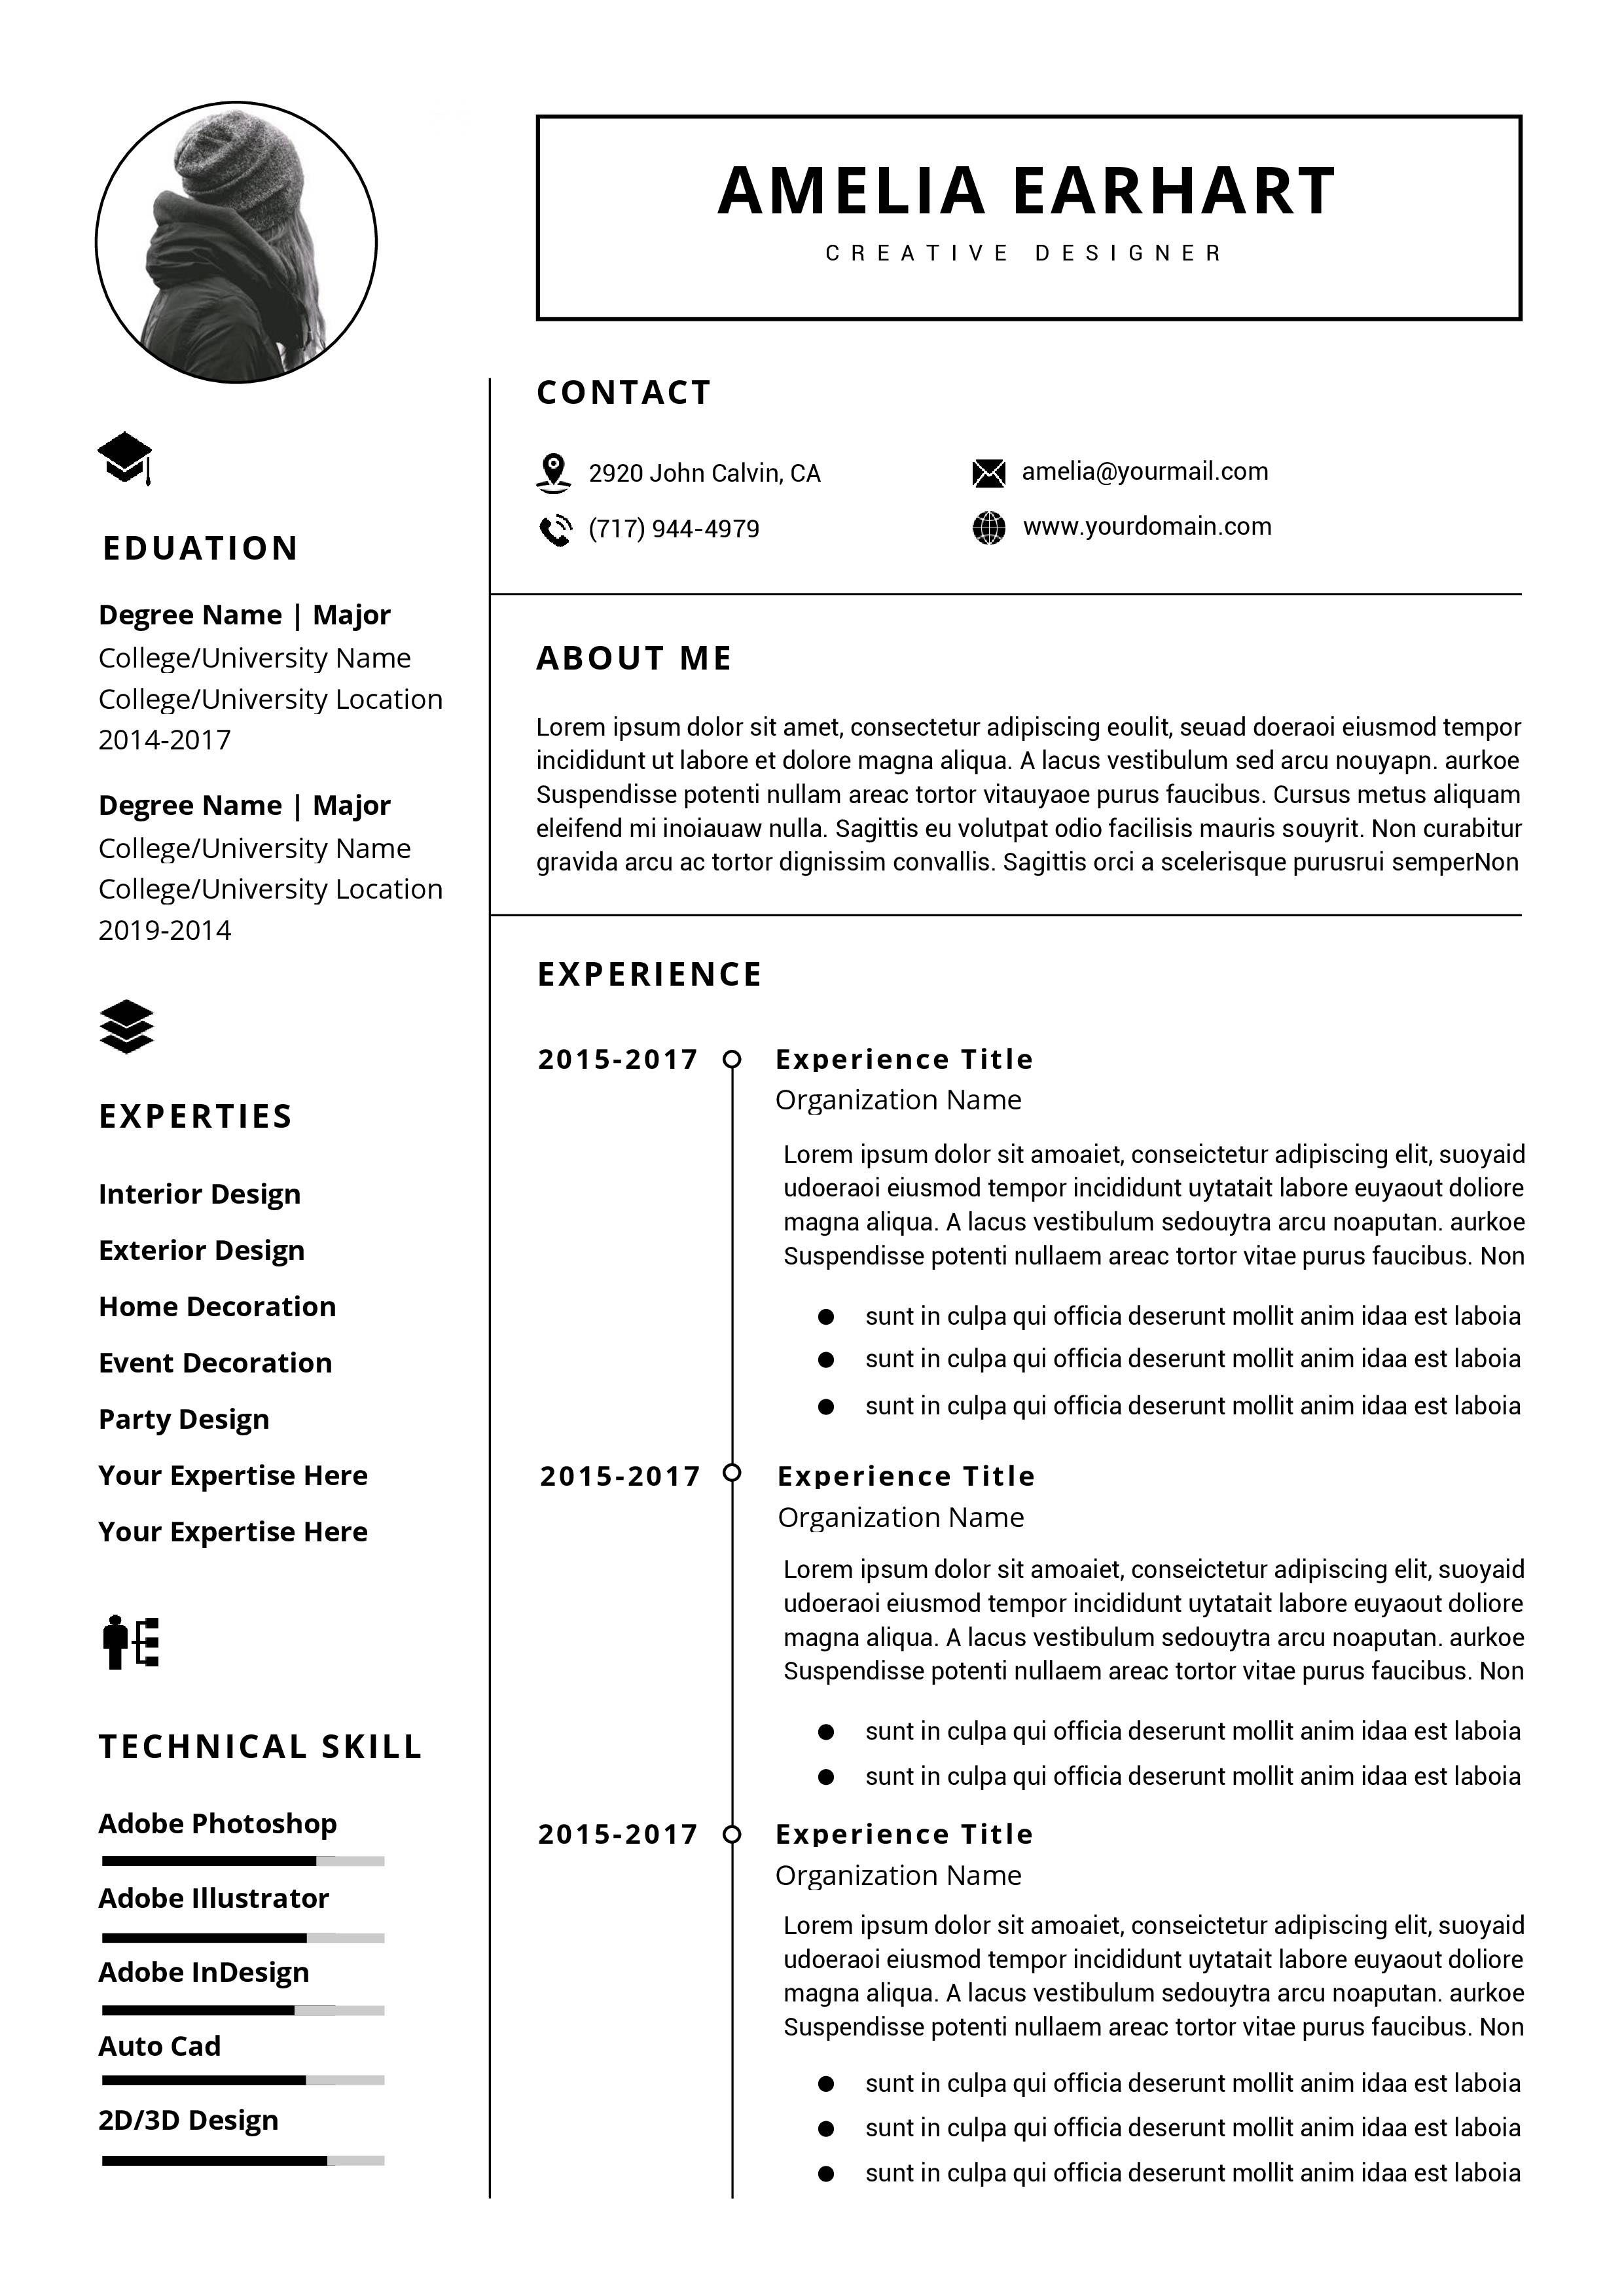 Check Out My Behance Project Resume Template Instant Download Professional Resume Https Www Behance Net Gallery 78442873 Resume Template Instant Do Resume